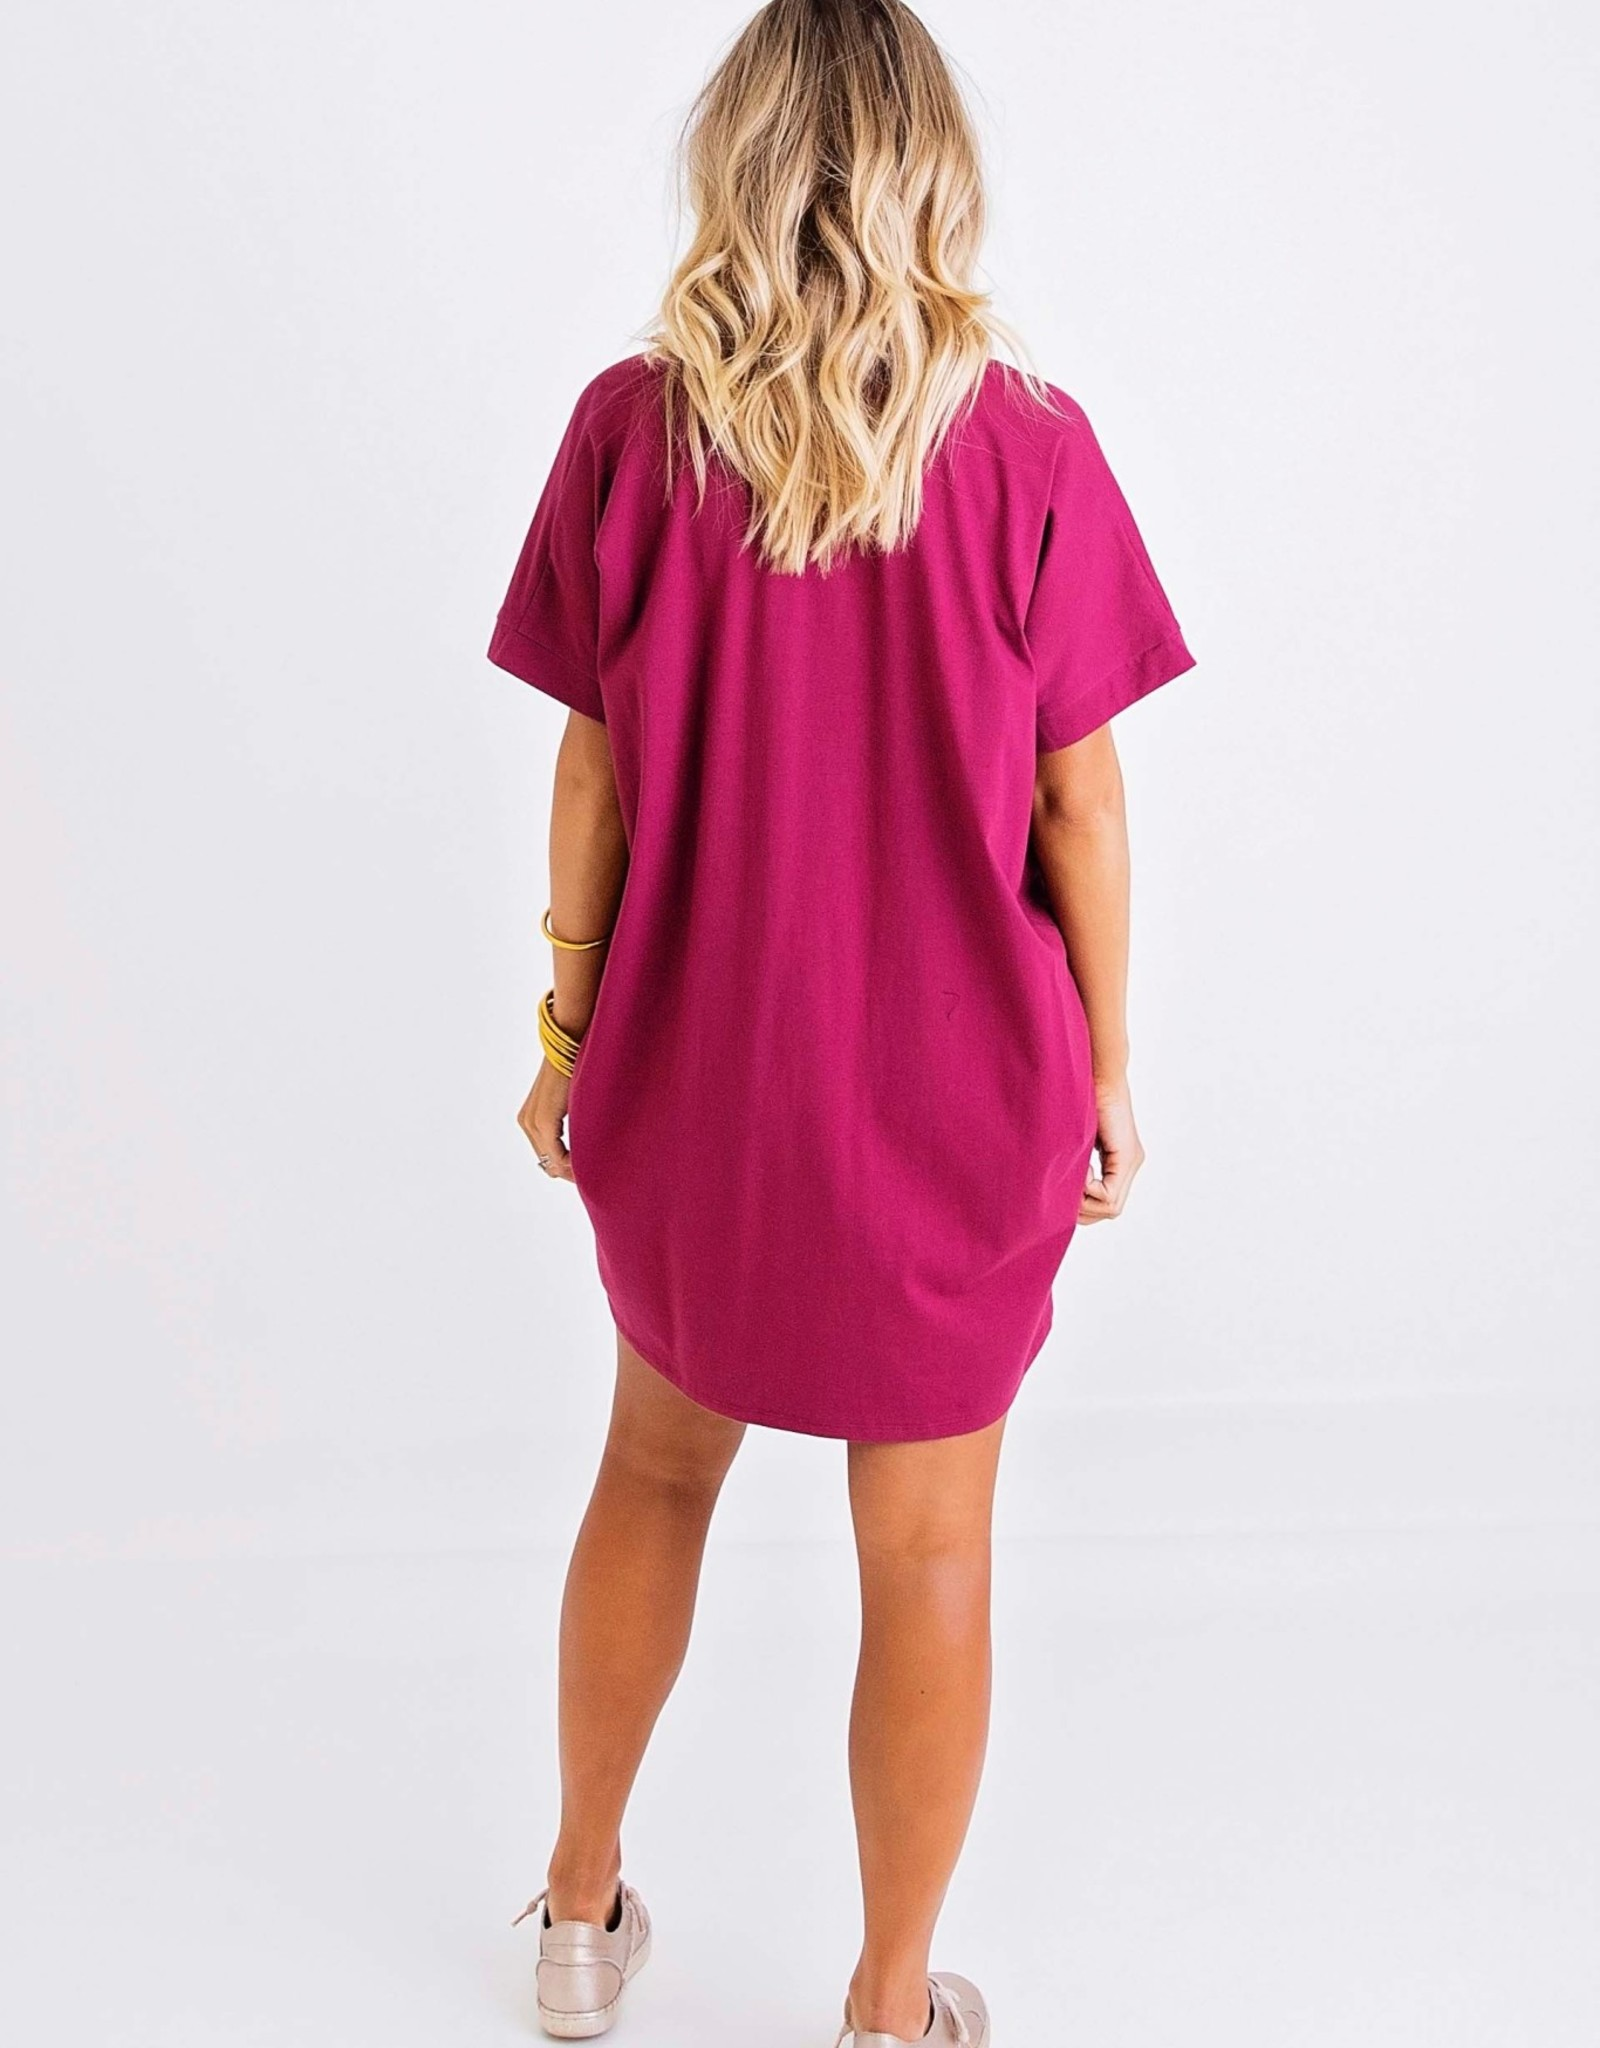 Karlie Burgundy Solid Knit Vneck Dress